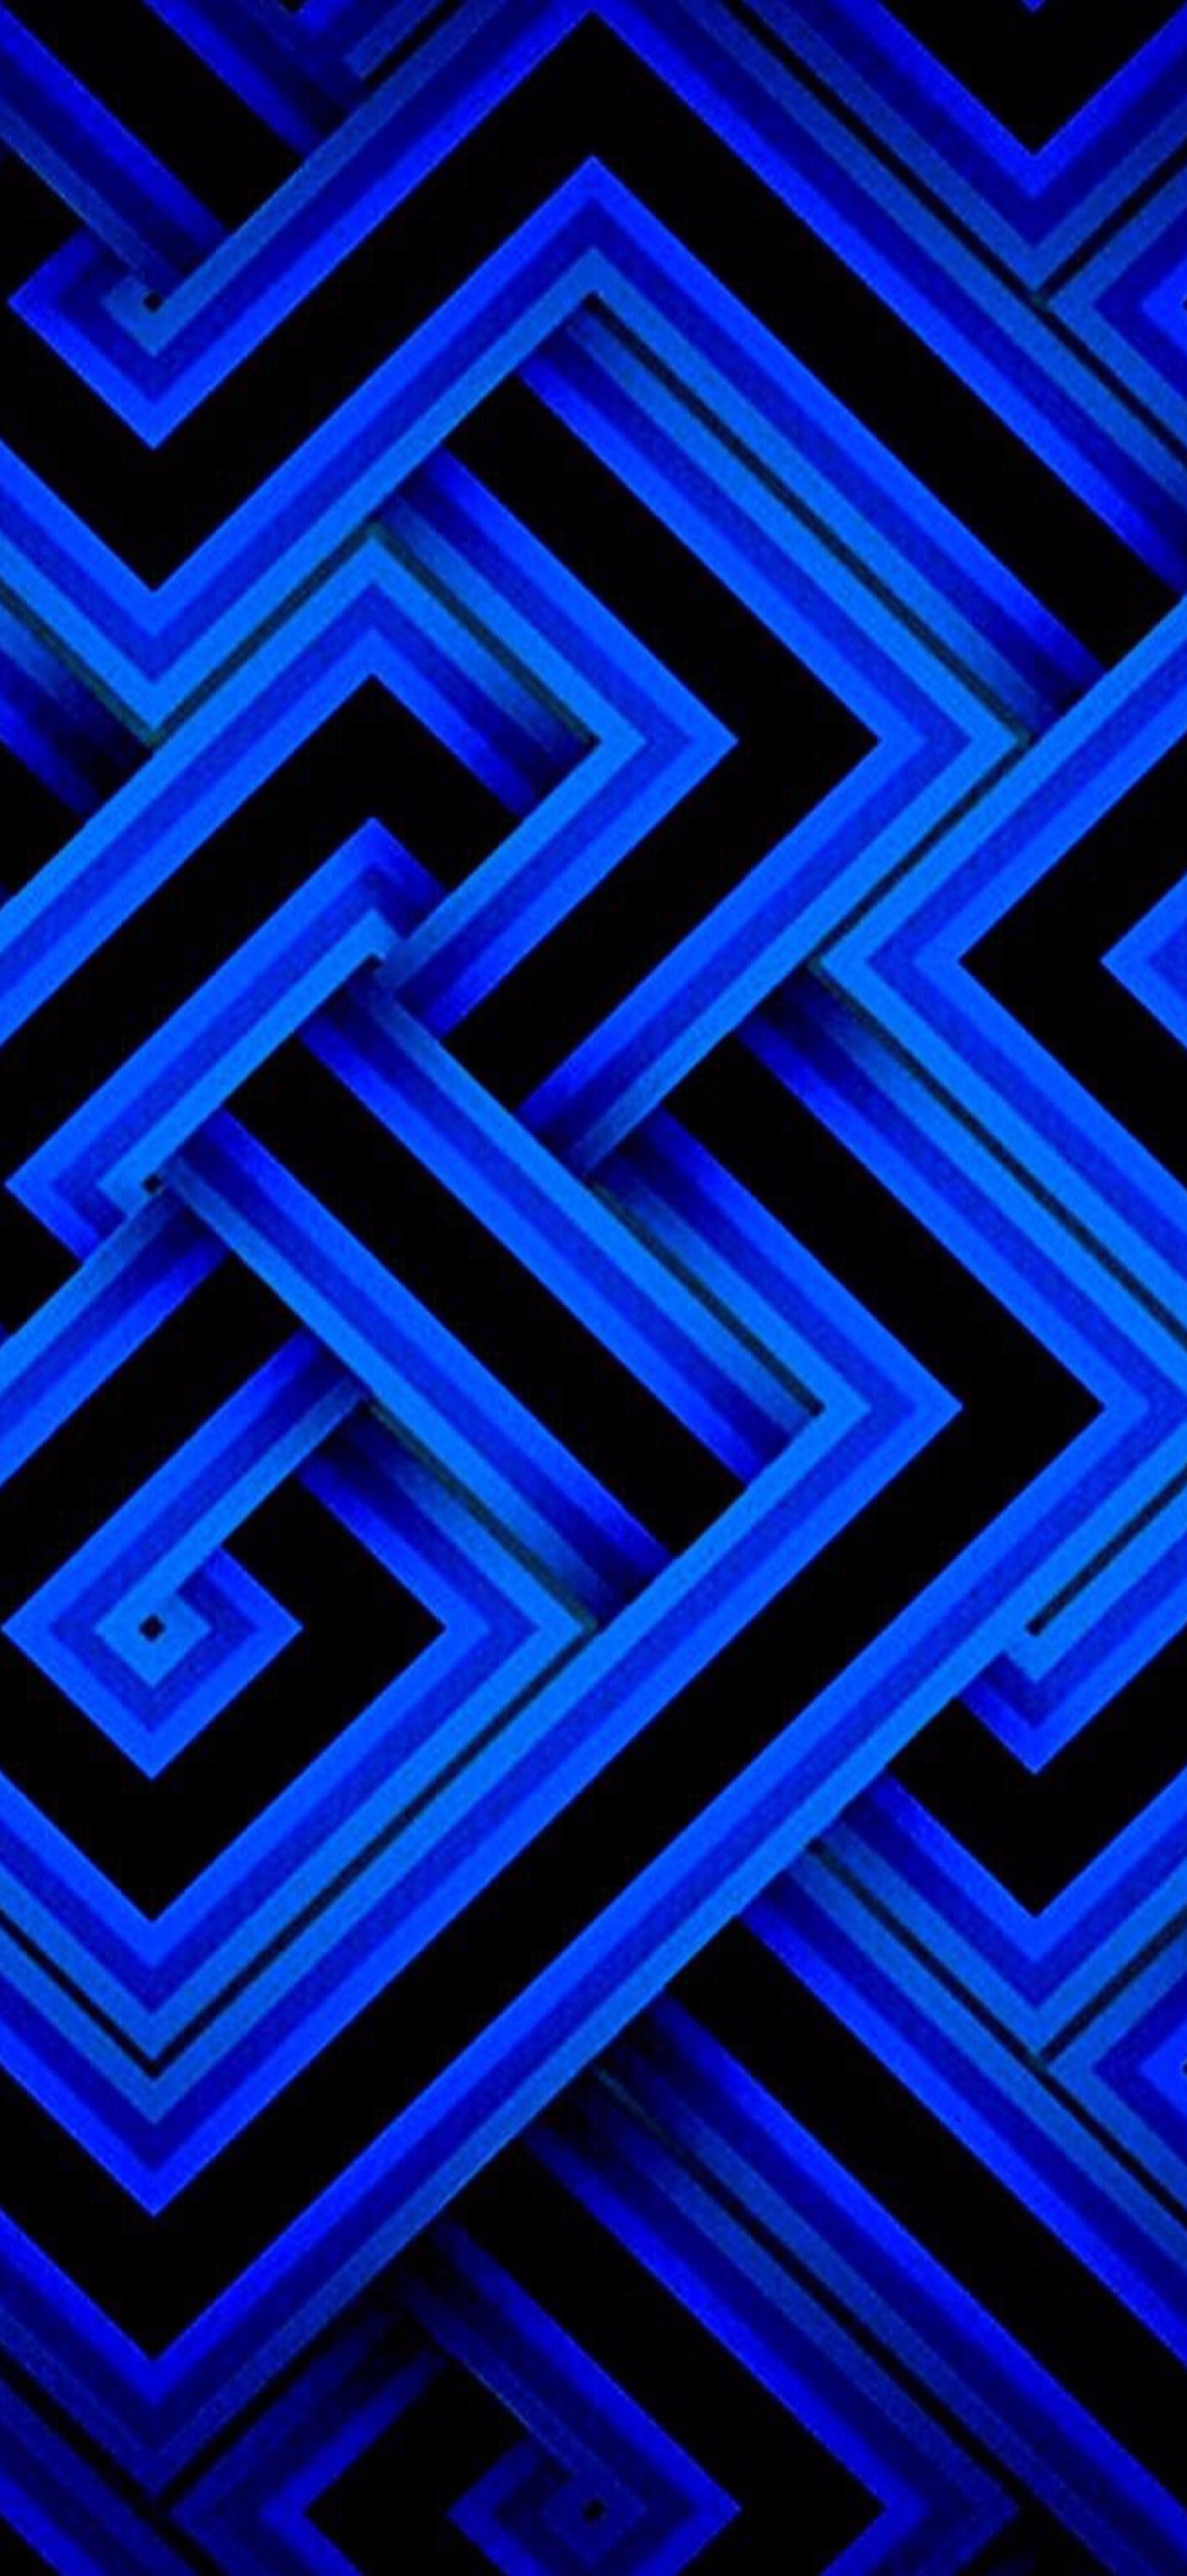 Wallpaper Cobalt Blue 003 resized for iPhone X (With